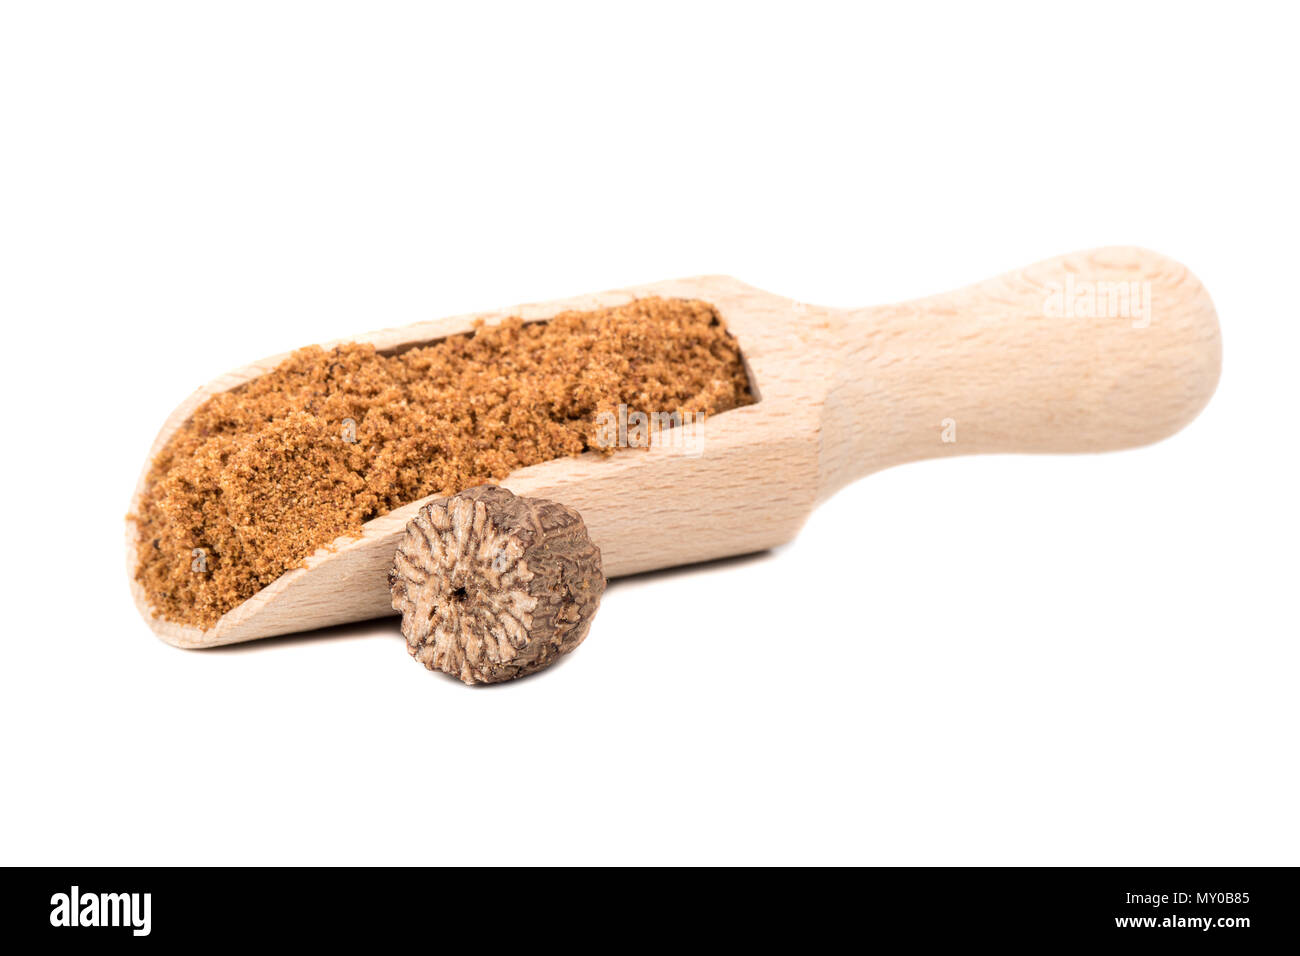 Nutmeg powder in the scoop with a half walnut on white background - Stock Image